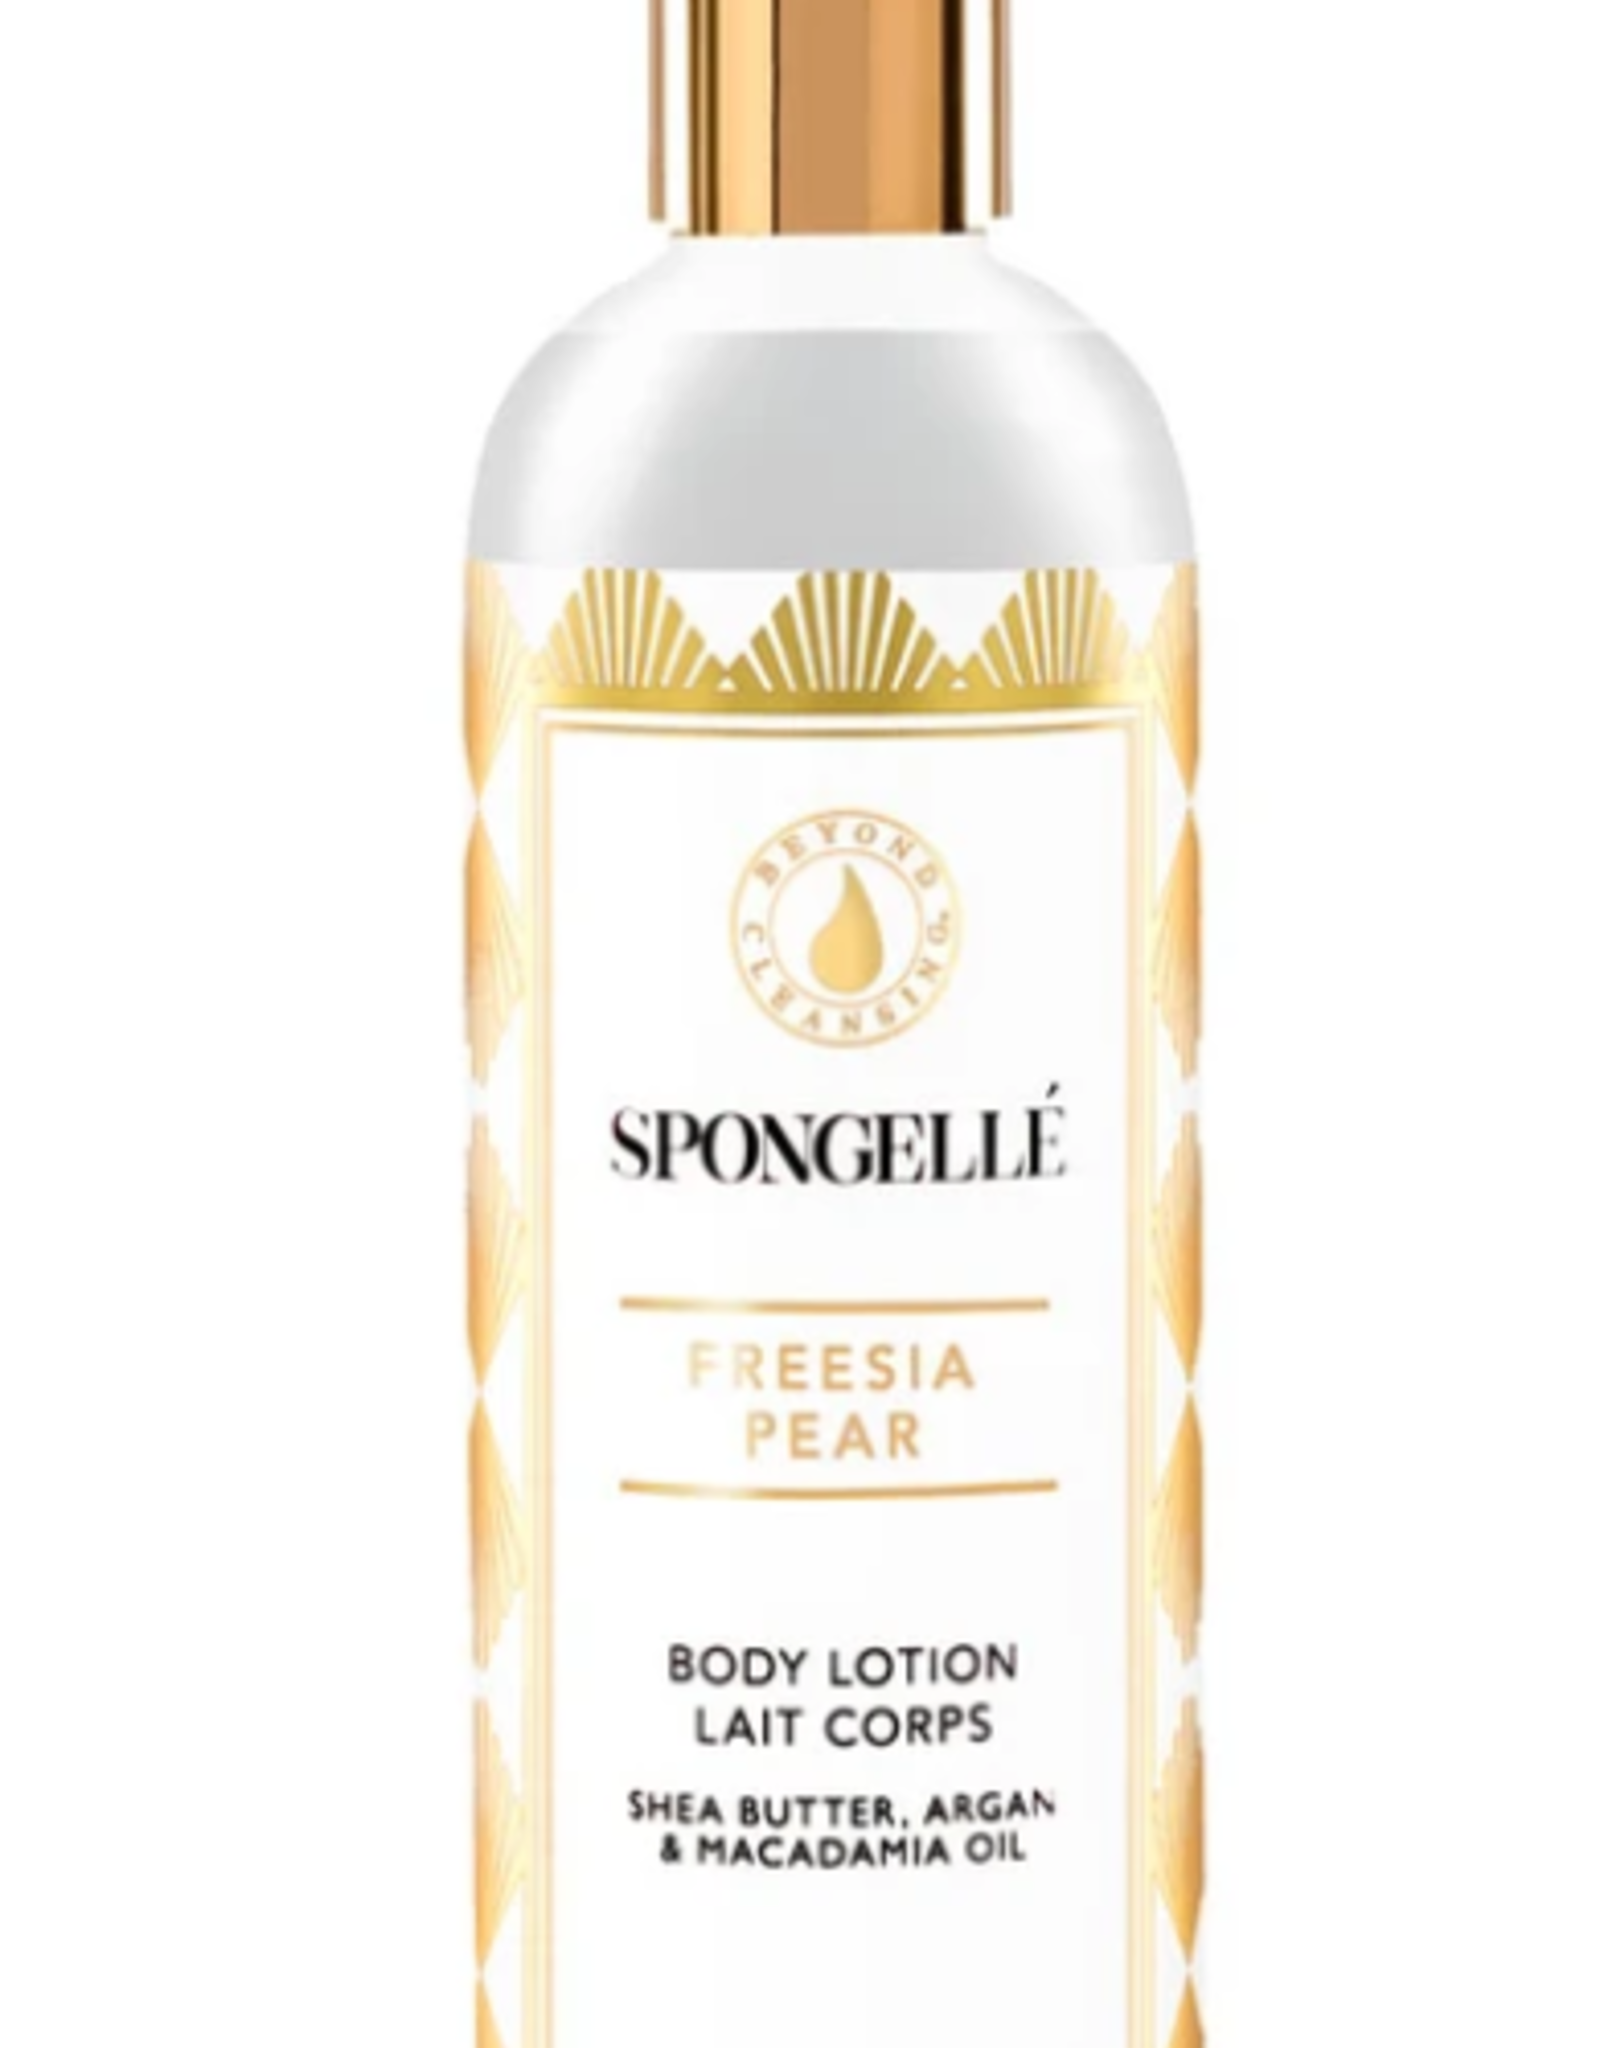 SPNGLL 12oz FREESIA PEAR BODY LOTION